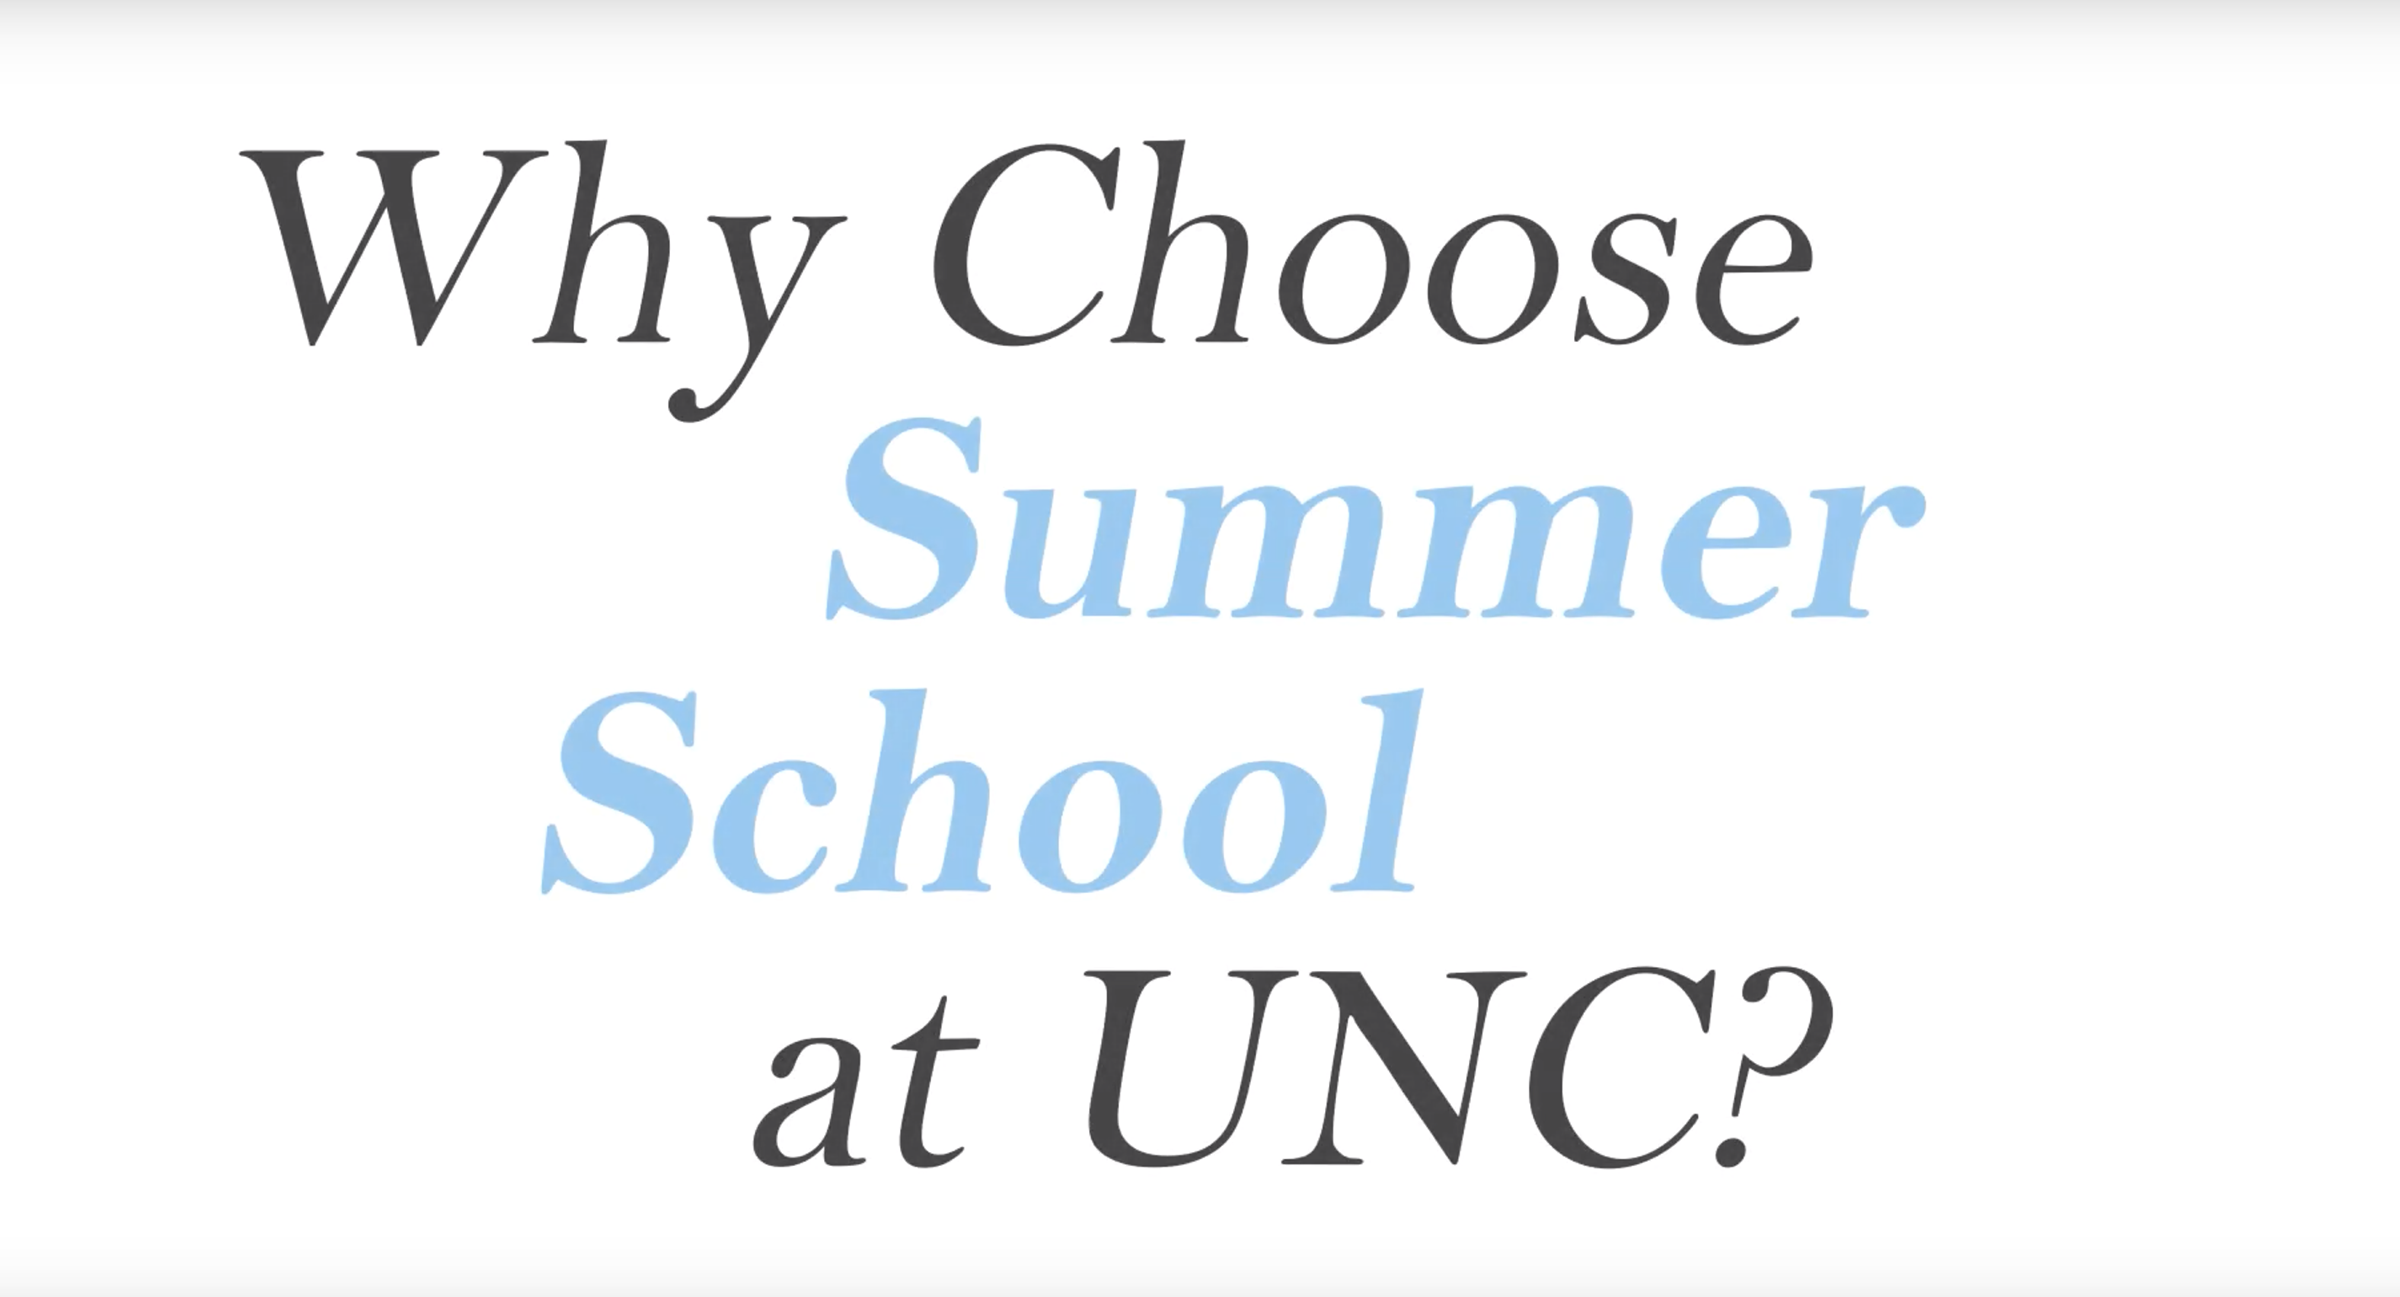 Why Choose Summer School at UNC? Video